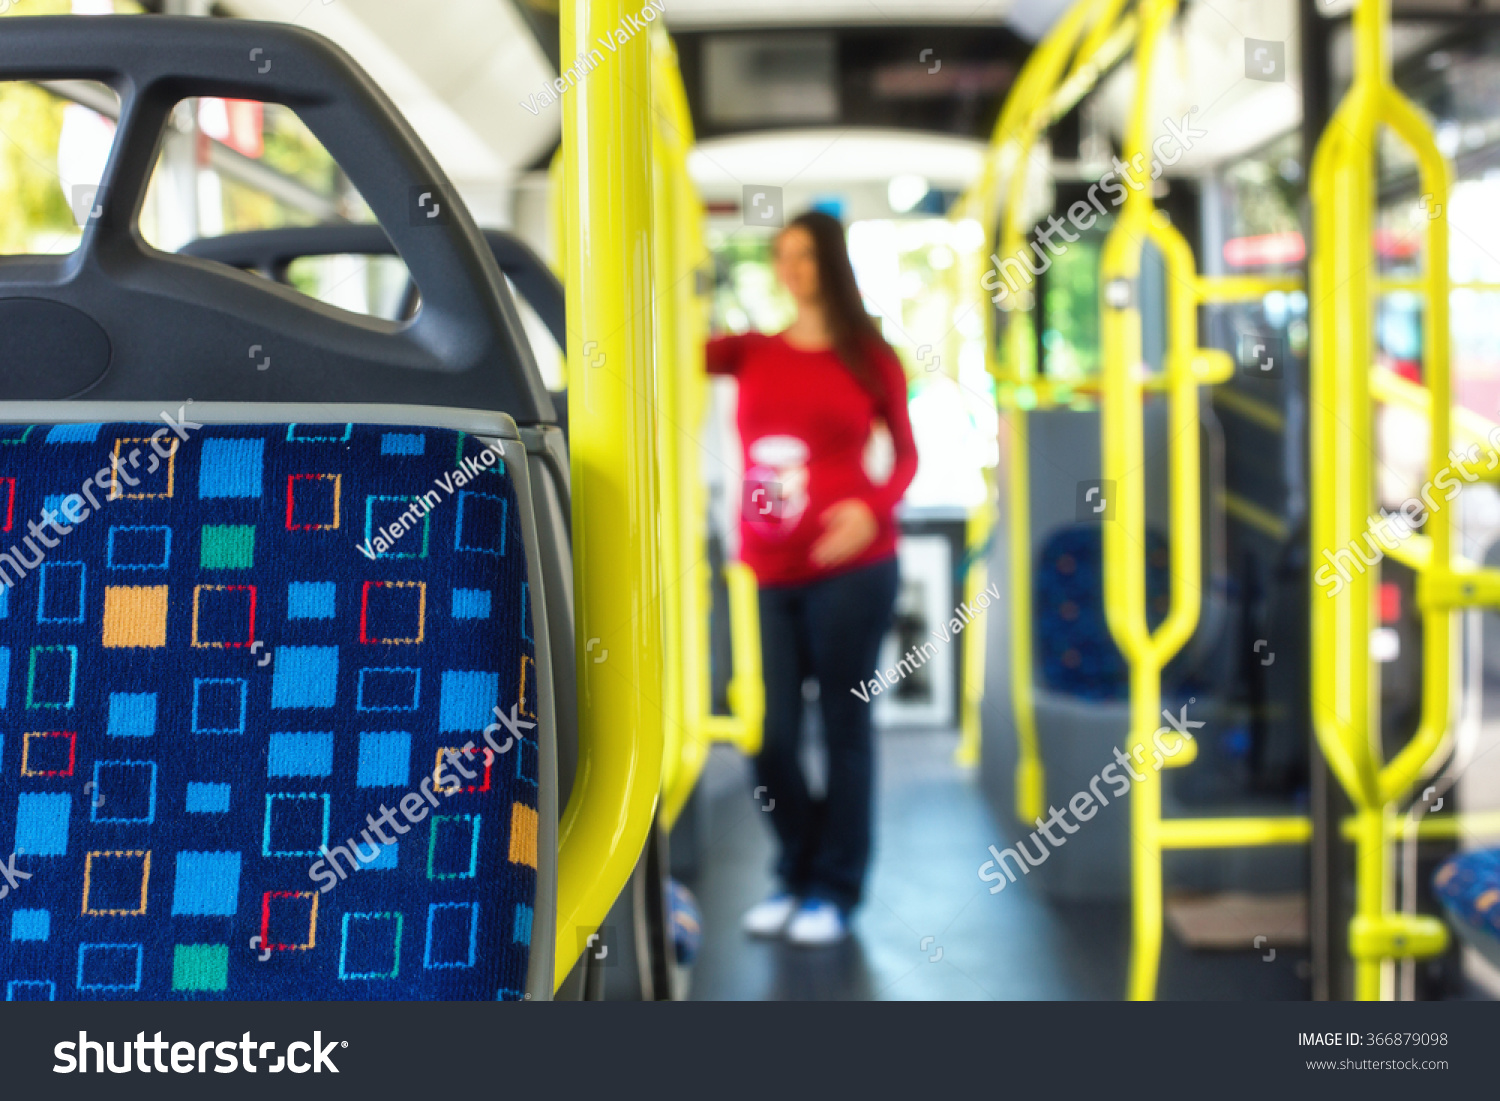 Silhouette of a pregnant woman travelling with public autobus or tramway during her commute to work school